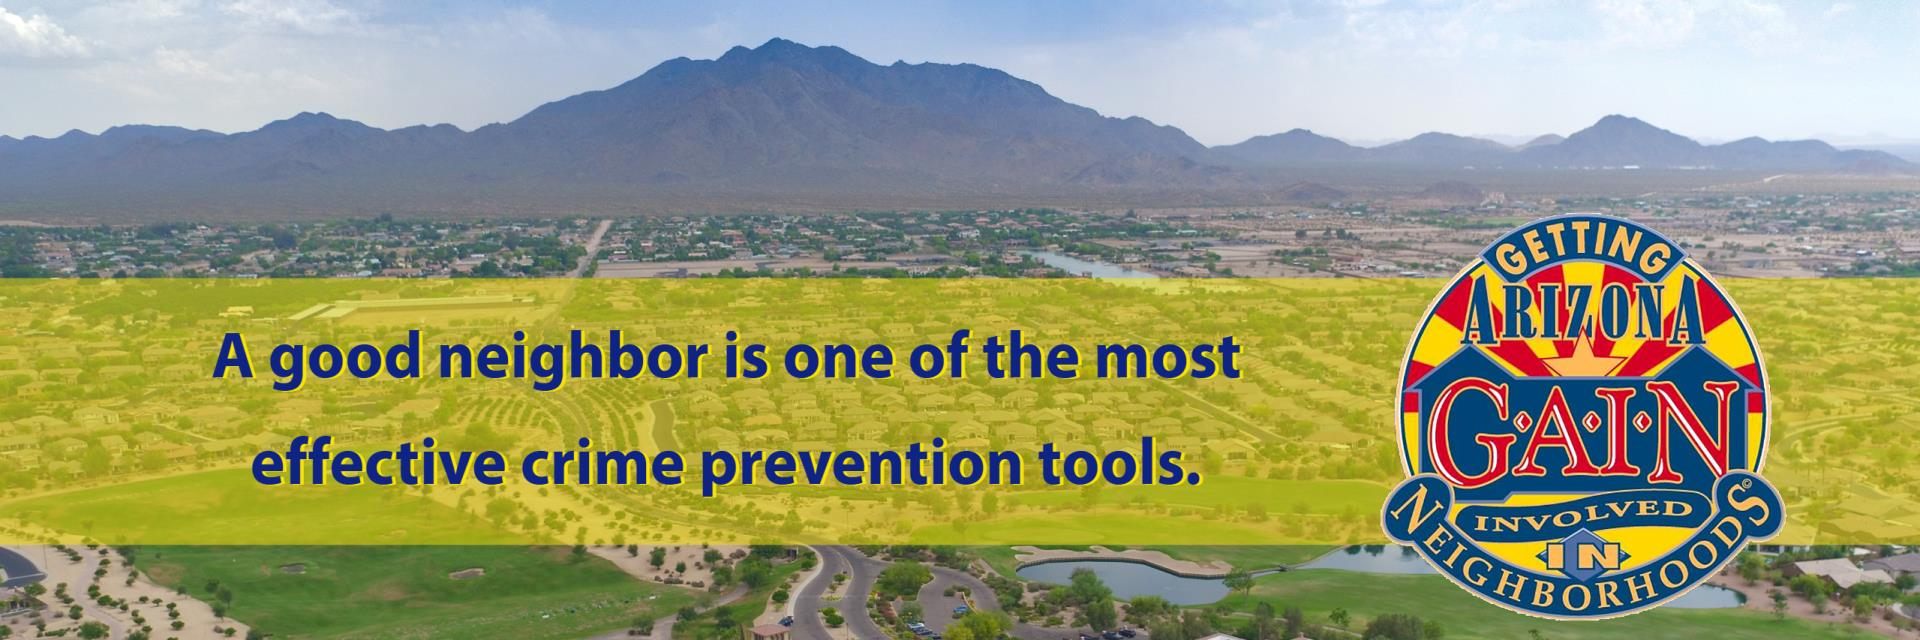 G A I N Getting Arizona Involved In Neighborhoods Town Of Gilbert Arizona Otherwise, check out these important facts you probably never knew about arizonanatureaquatics.com. g a i n getting arizona involved in